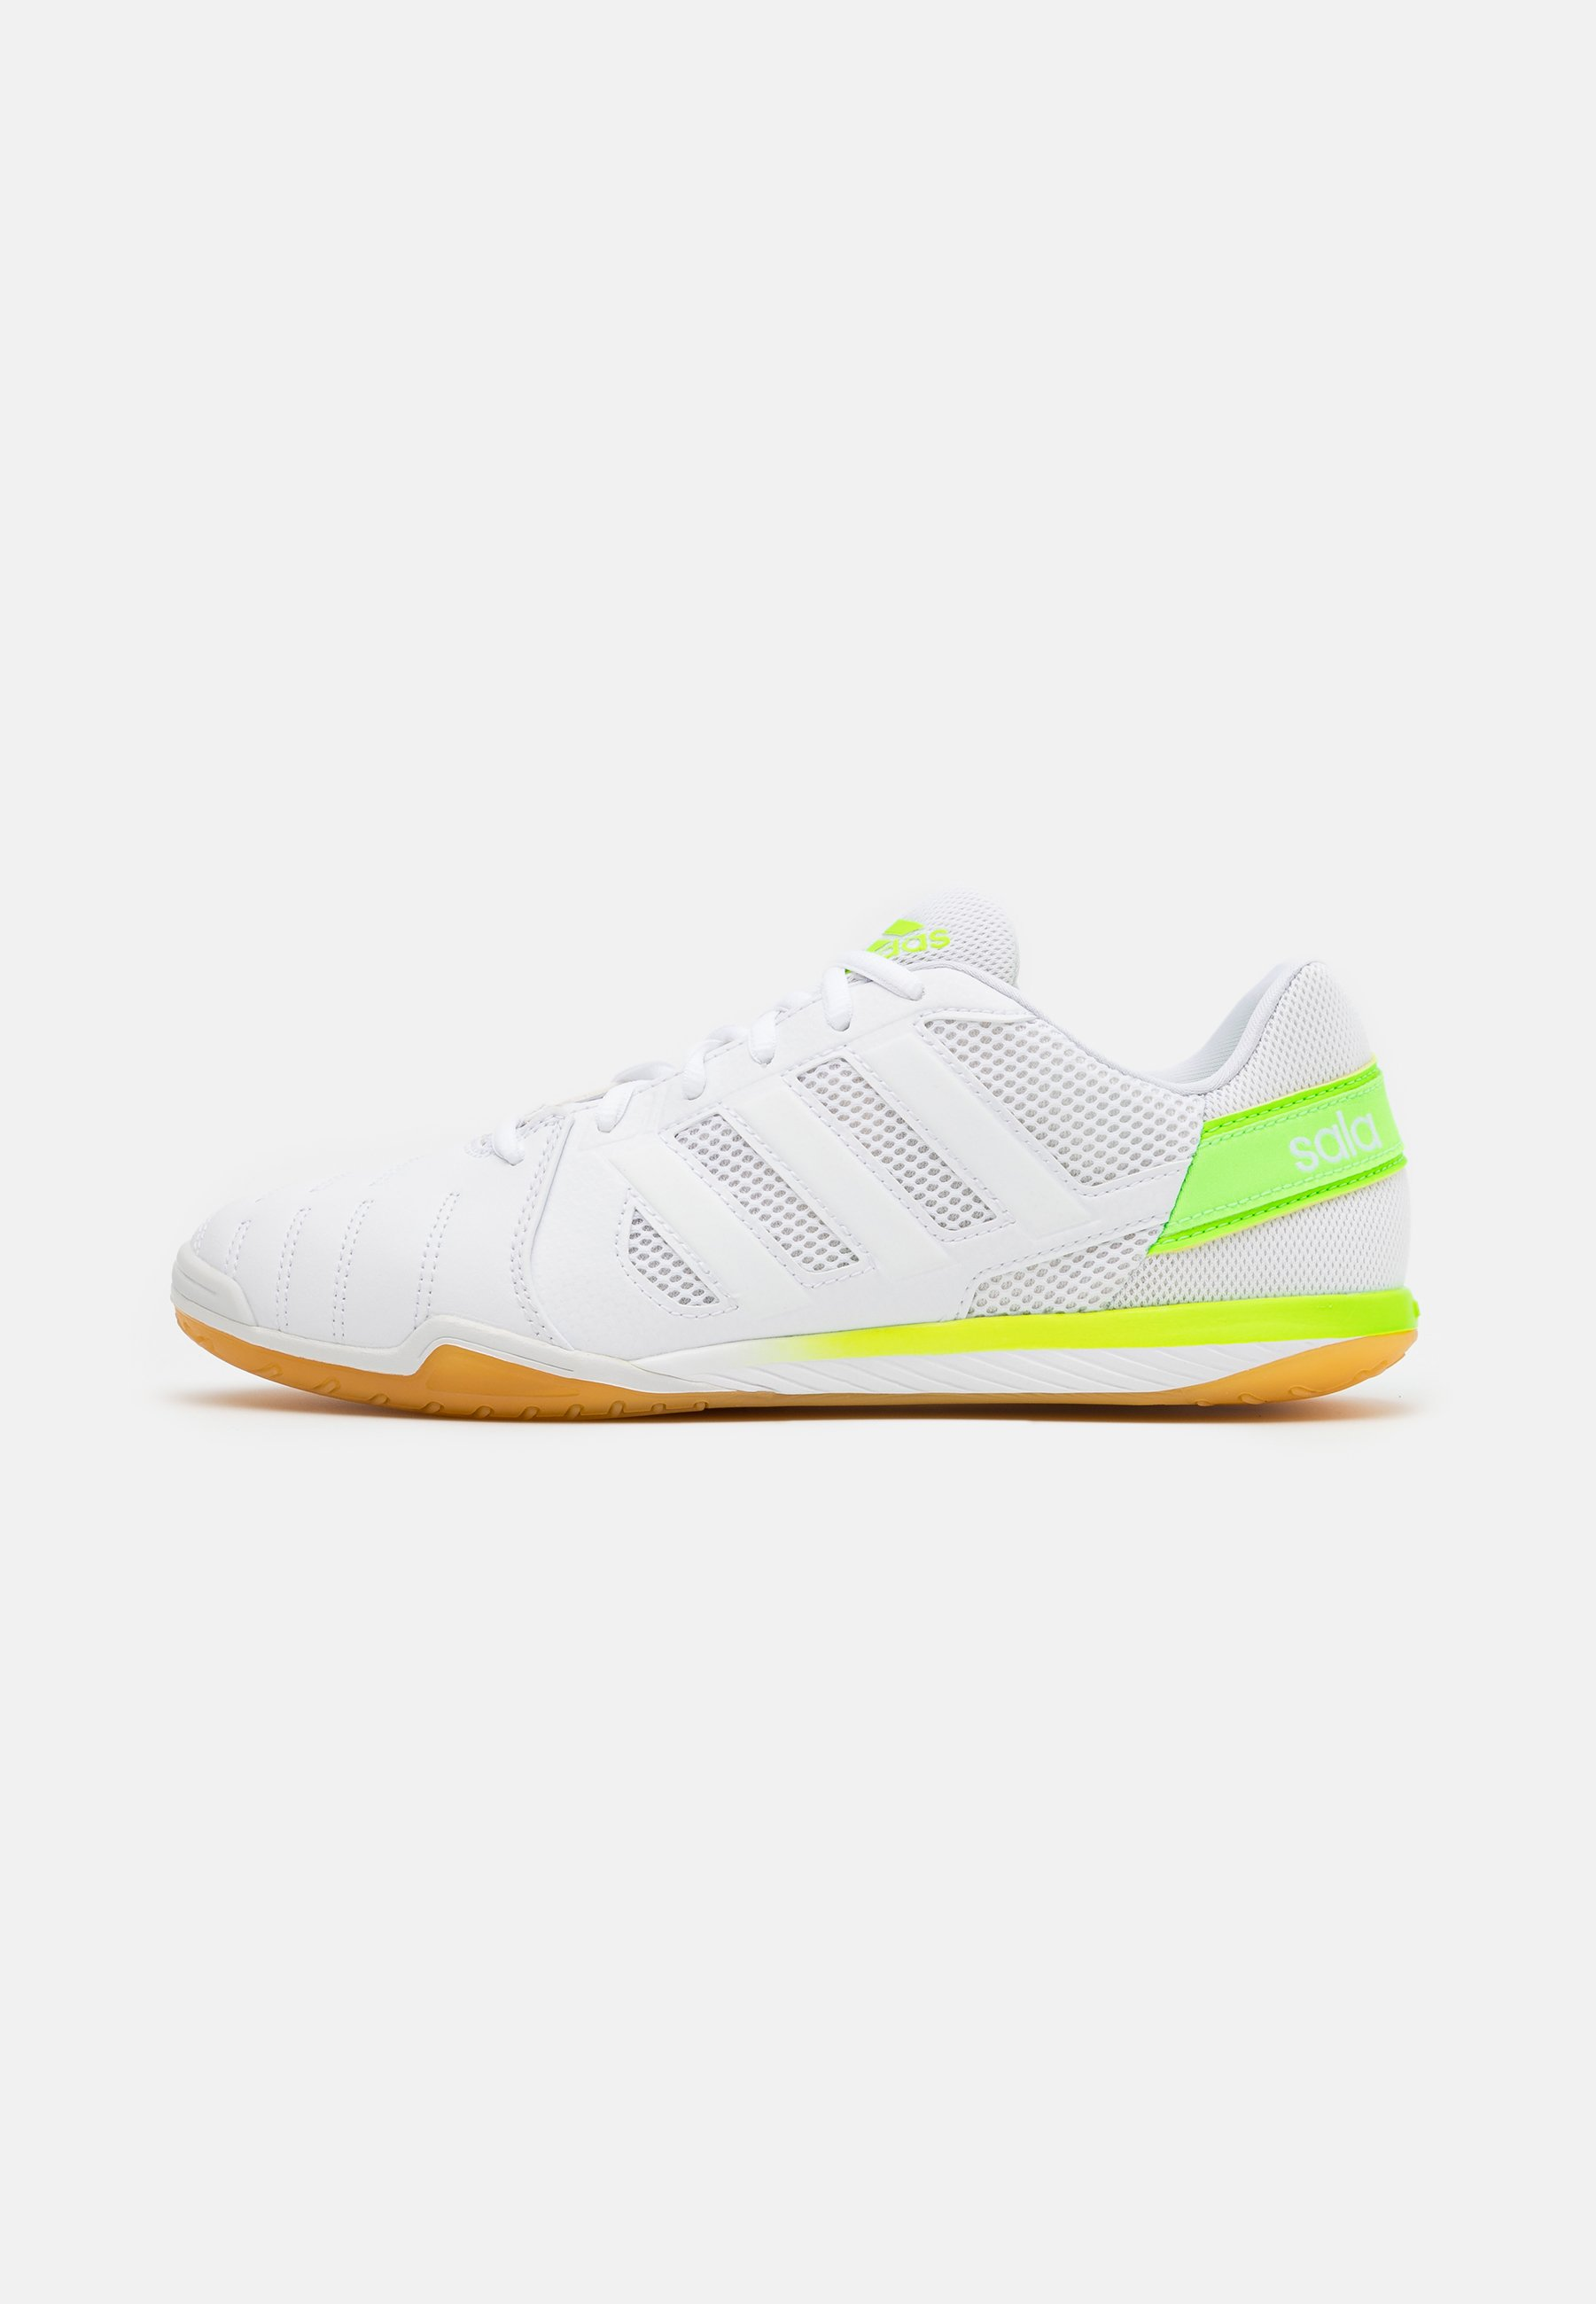 TOP SALA FOOTBALL SHOES INDOOR Fotbollsskor inomhusskor footwear whitesignal green